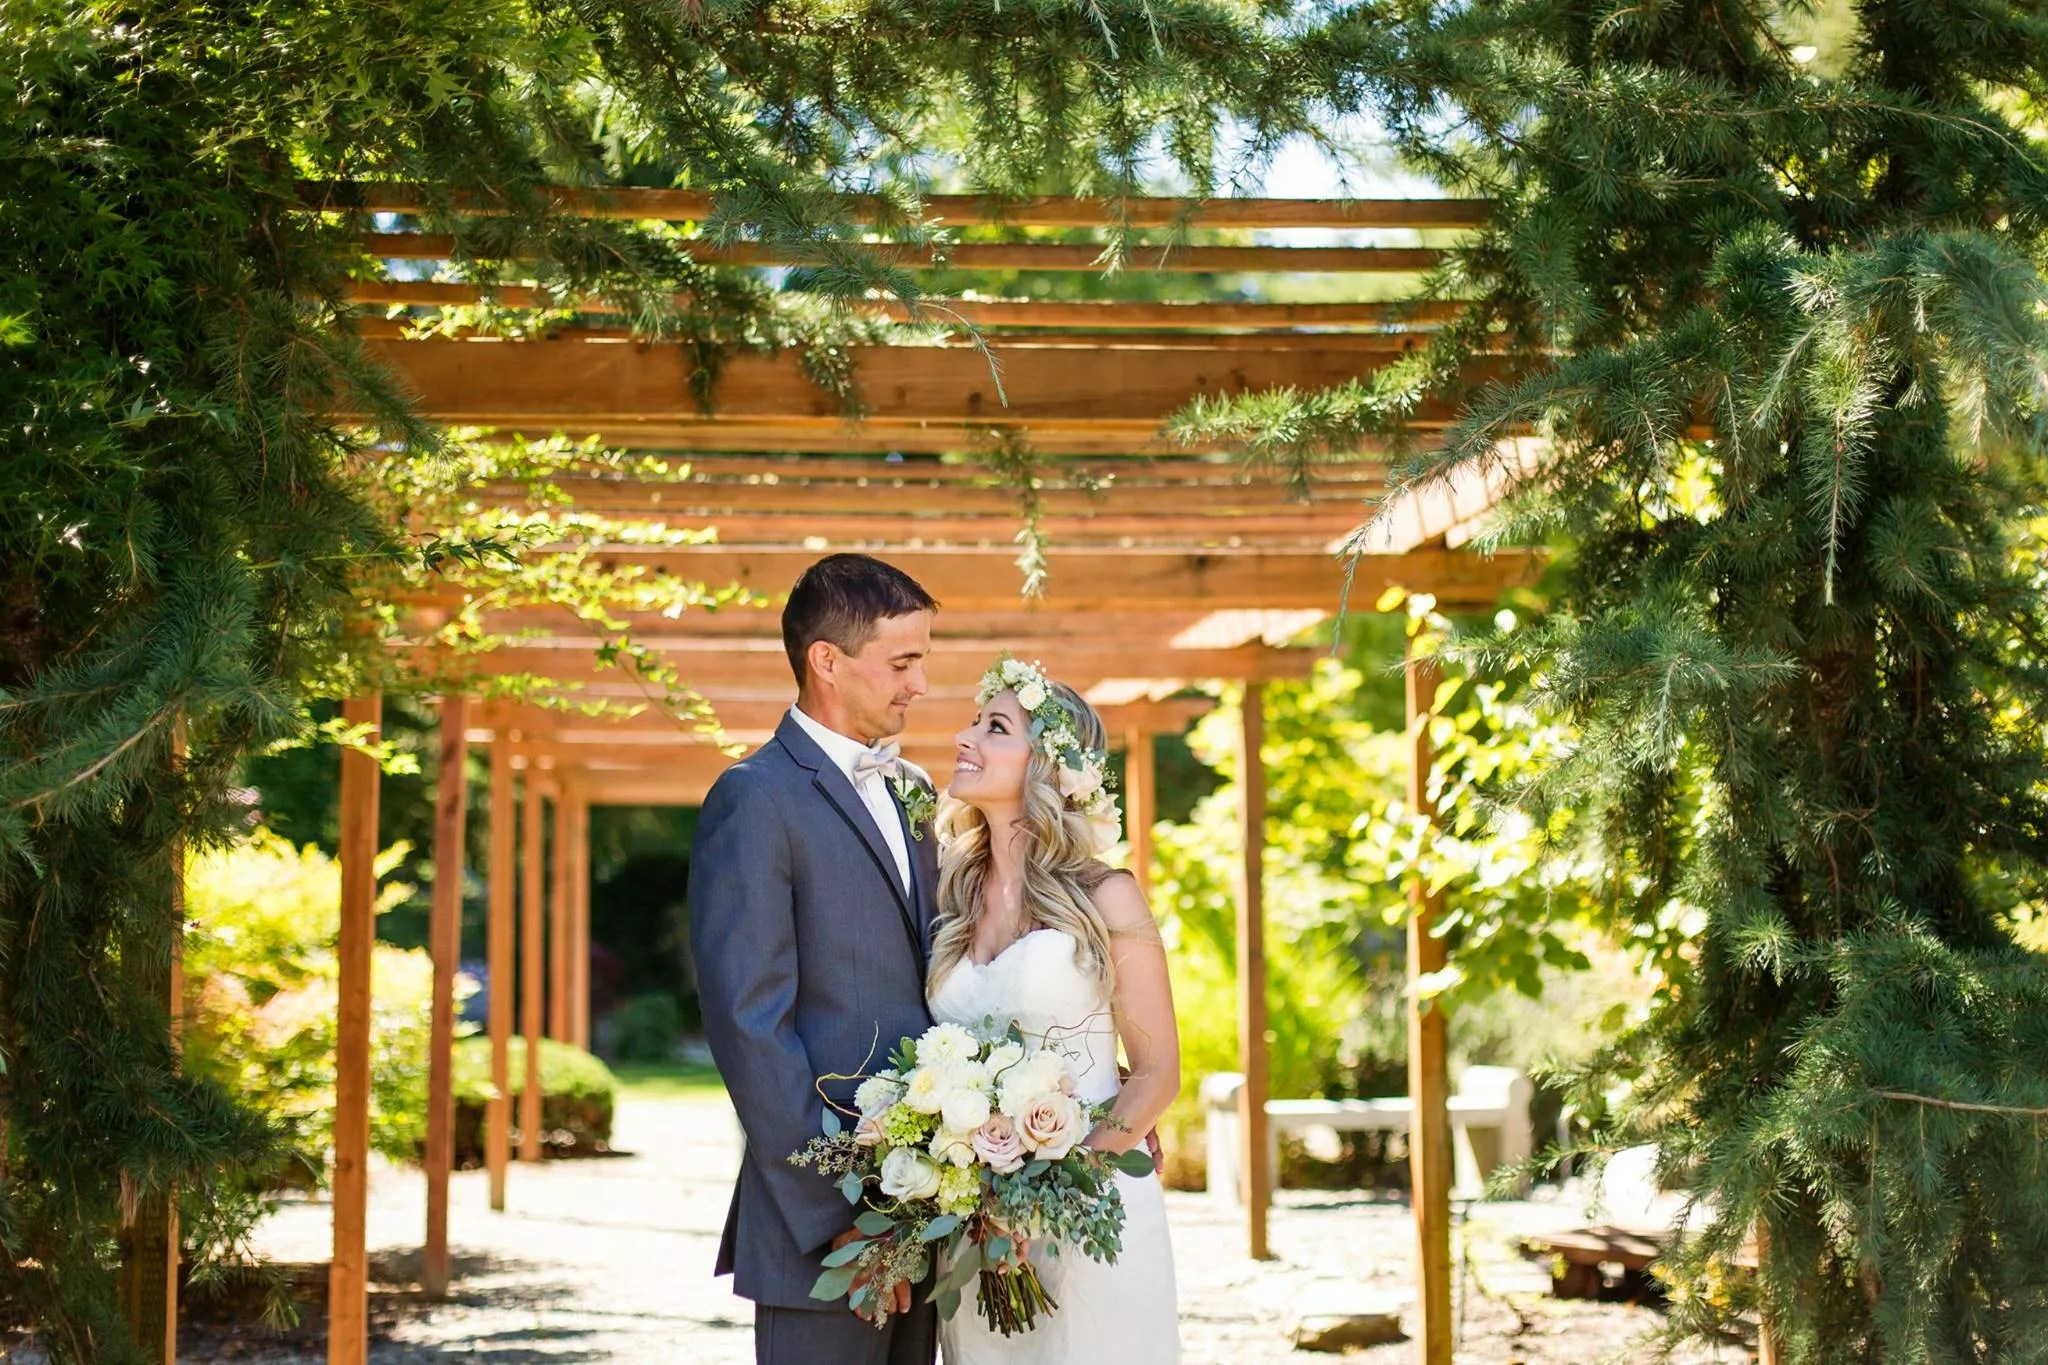 Rock Creek Gardens Wedding Venue Puyallup WA